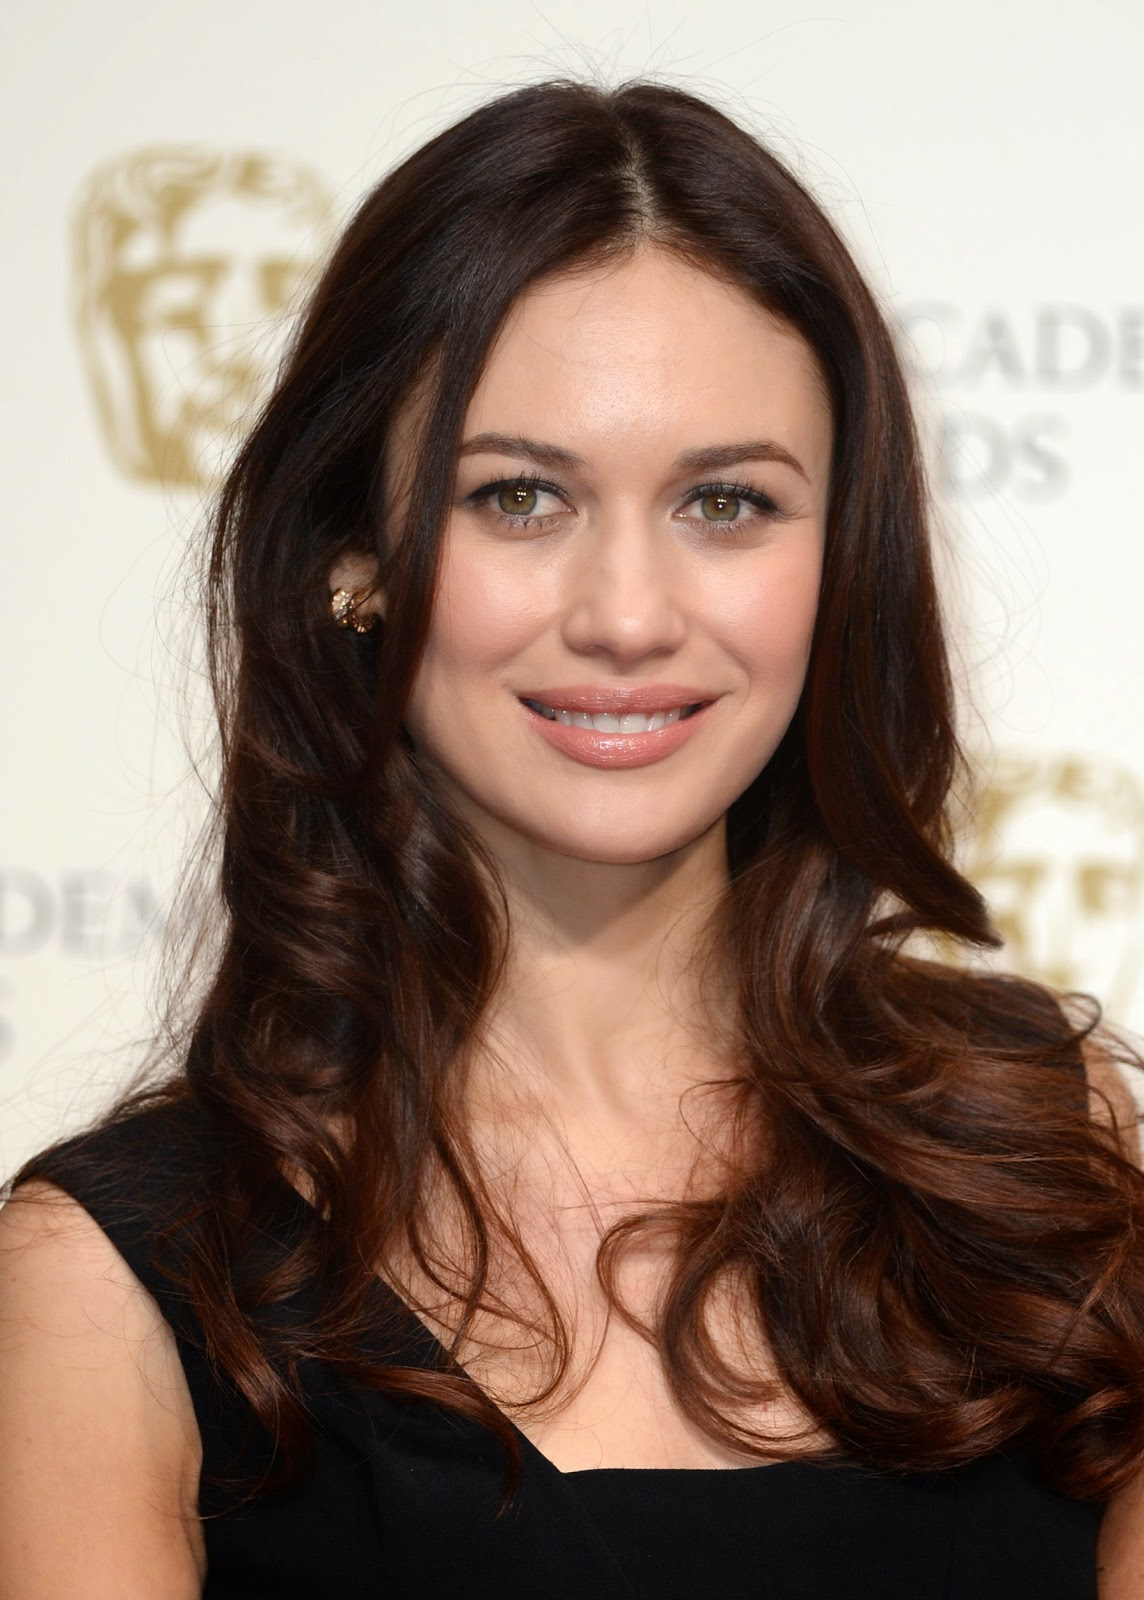 French actress Olga Kurylenko Full HD Photo & Wallpapers